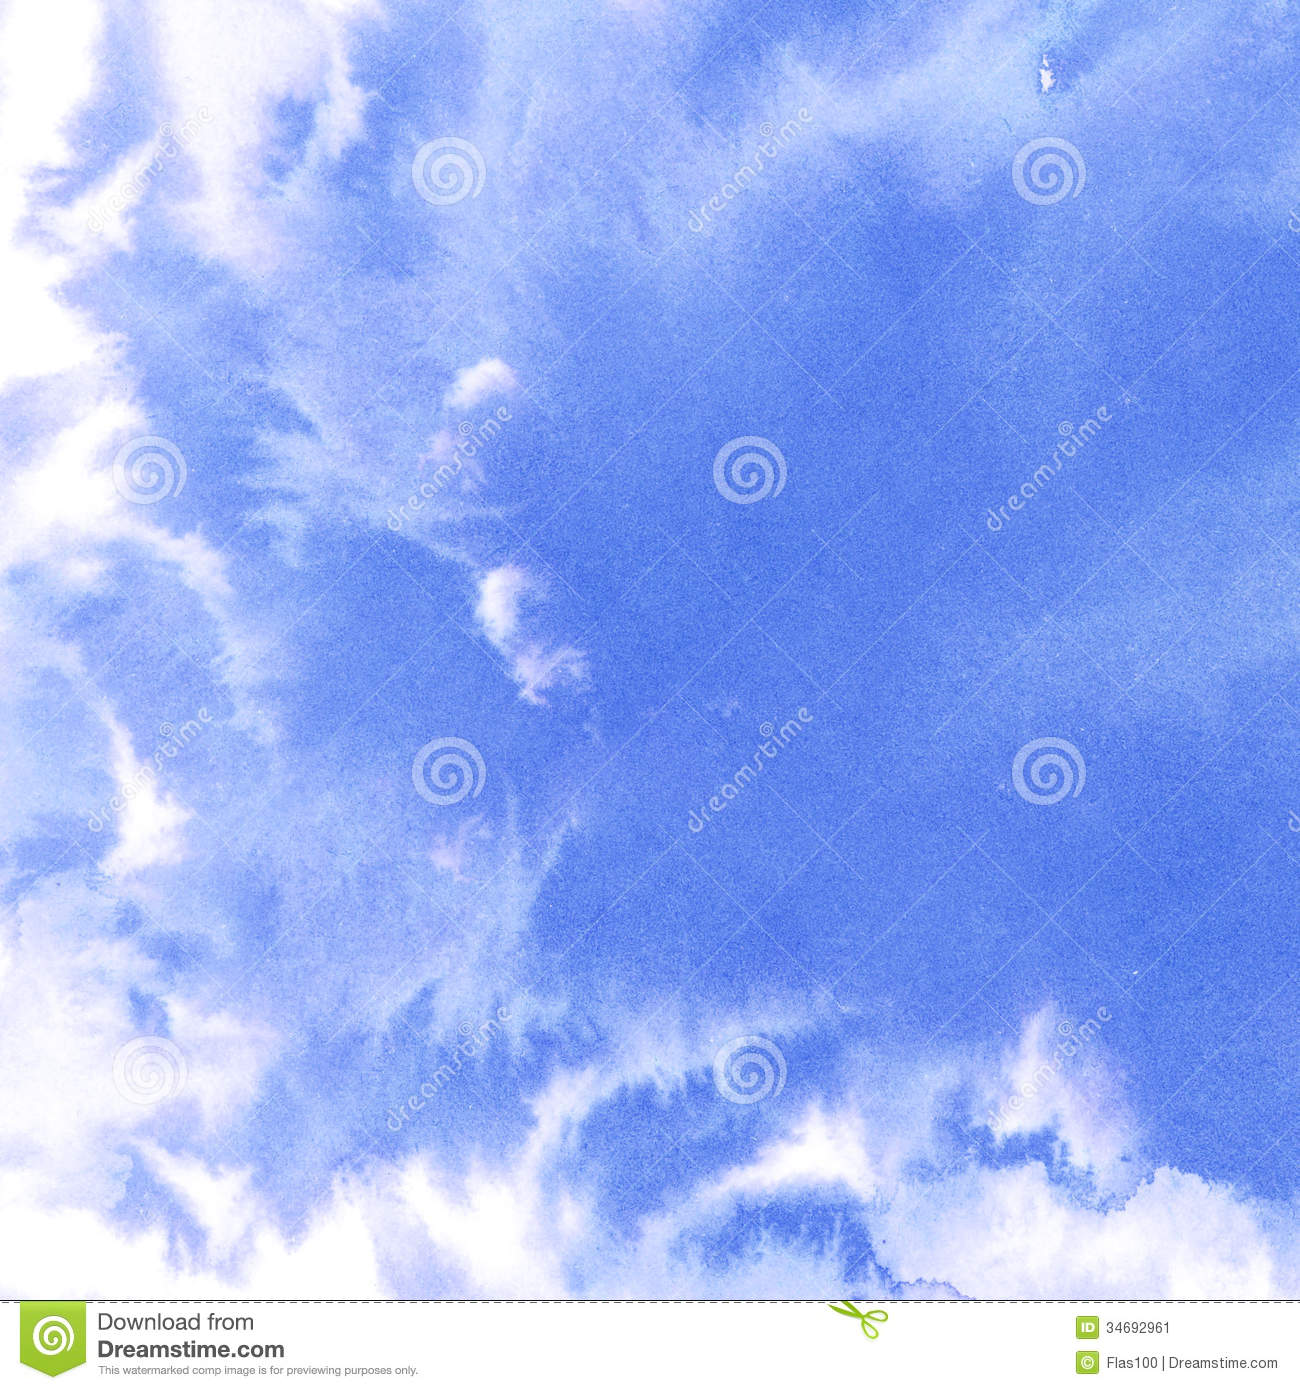 Abstract Watercolor Sky, Clouds Stock Image - Image: 34692961